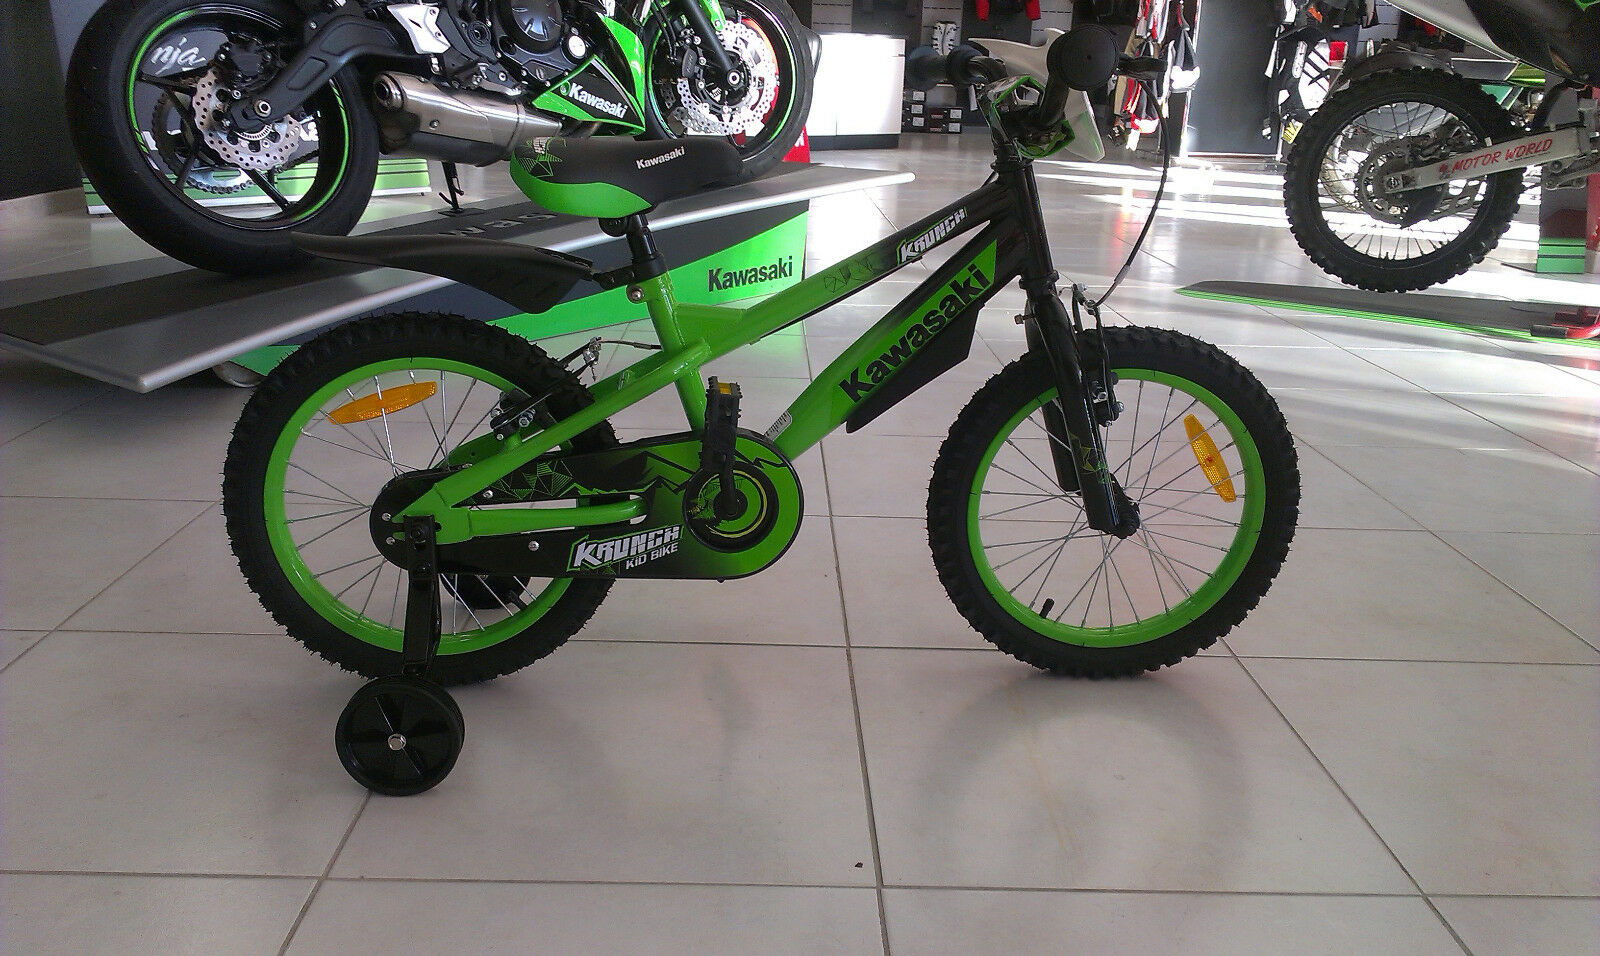 BICICLETTA MOUNTAIN BIKE MTB BIKE KAWASAKI BMX KRAFFITI 16'' color green-black